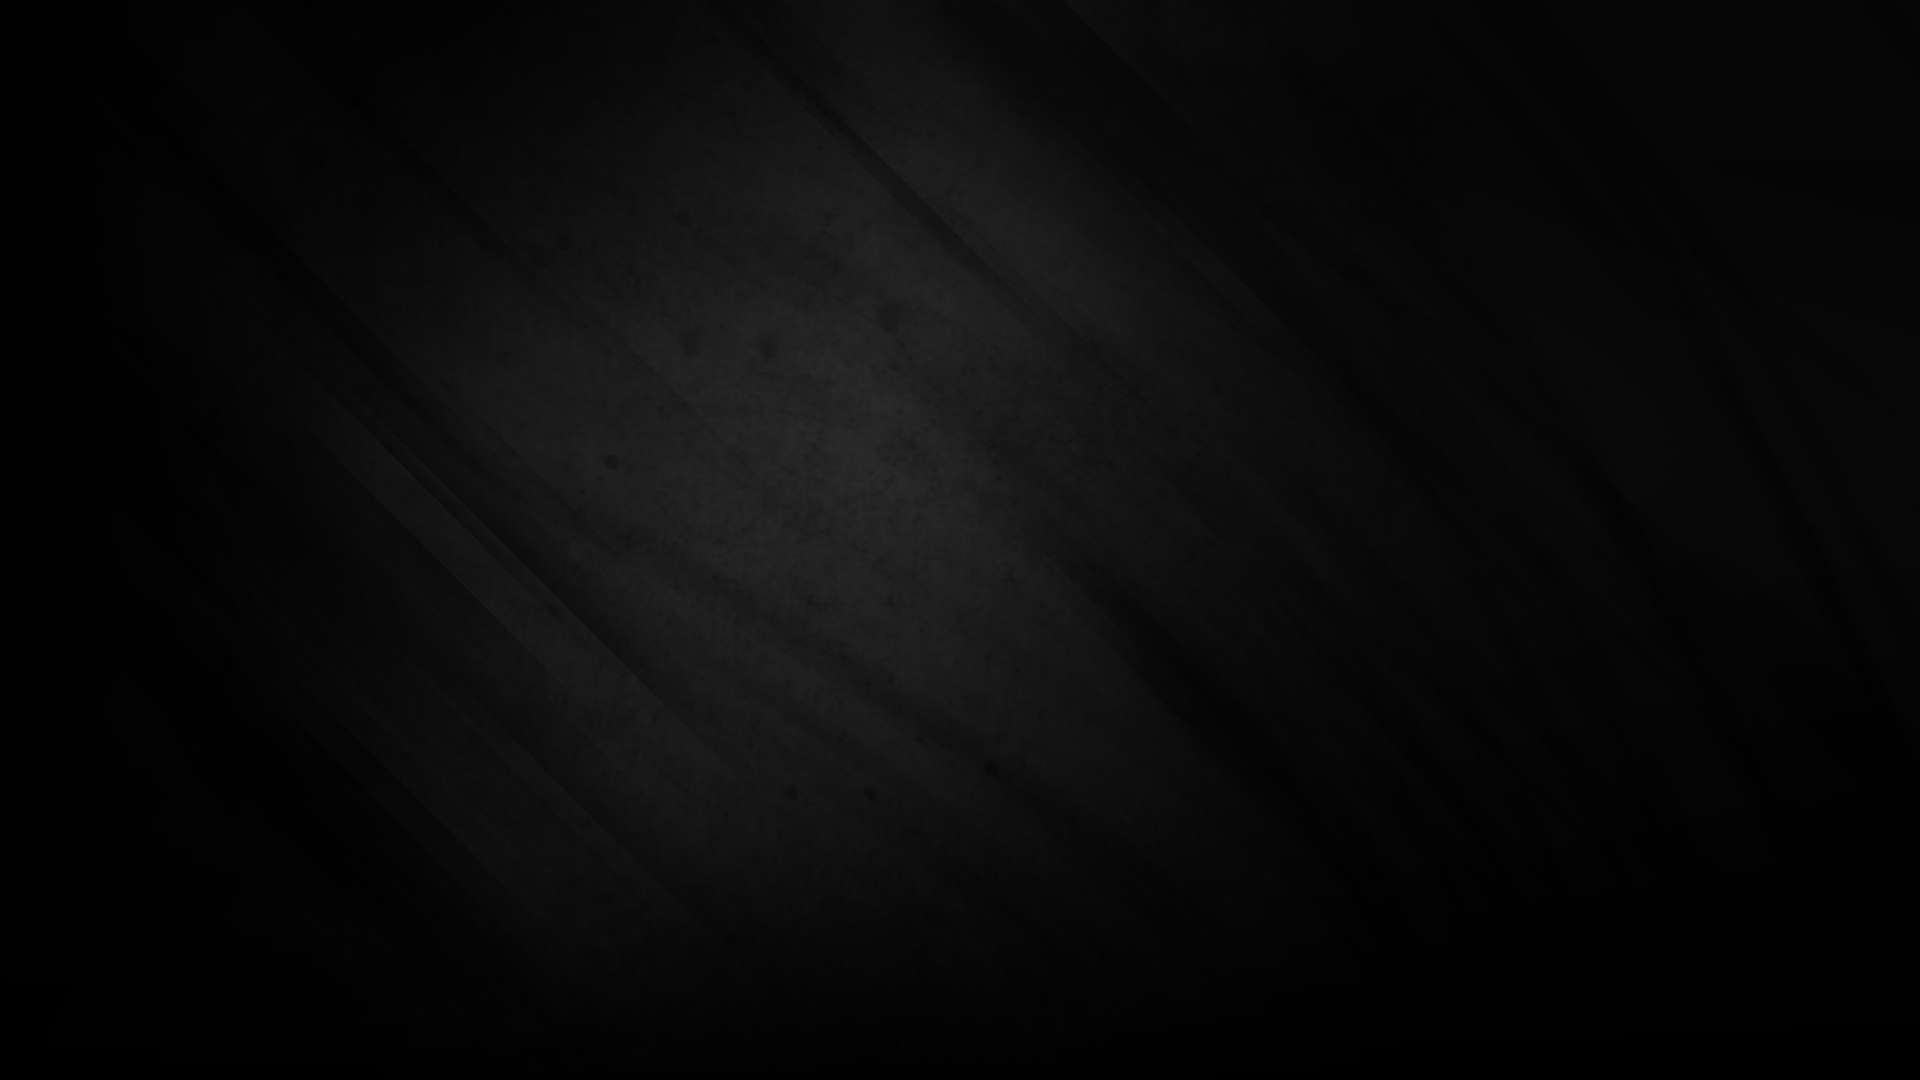 Quality Black wallpaper Wallpapers Wallpapers 1920x1080